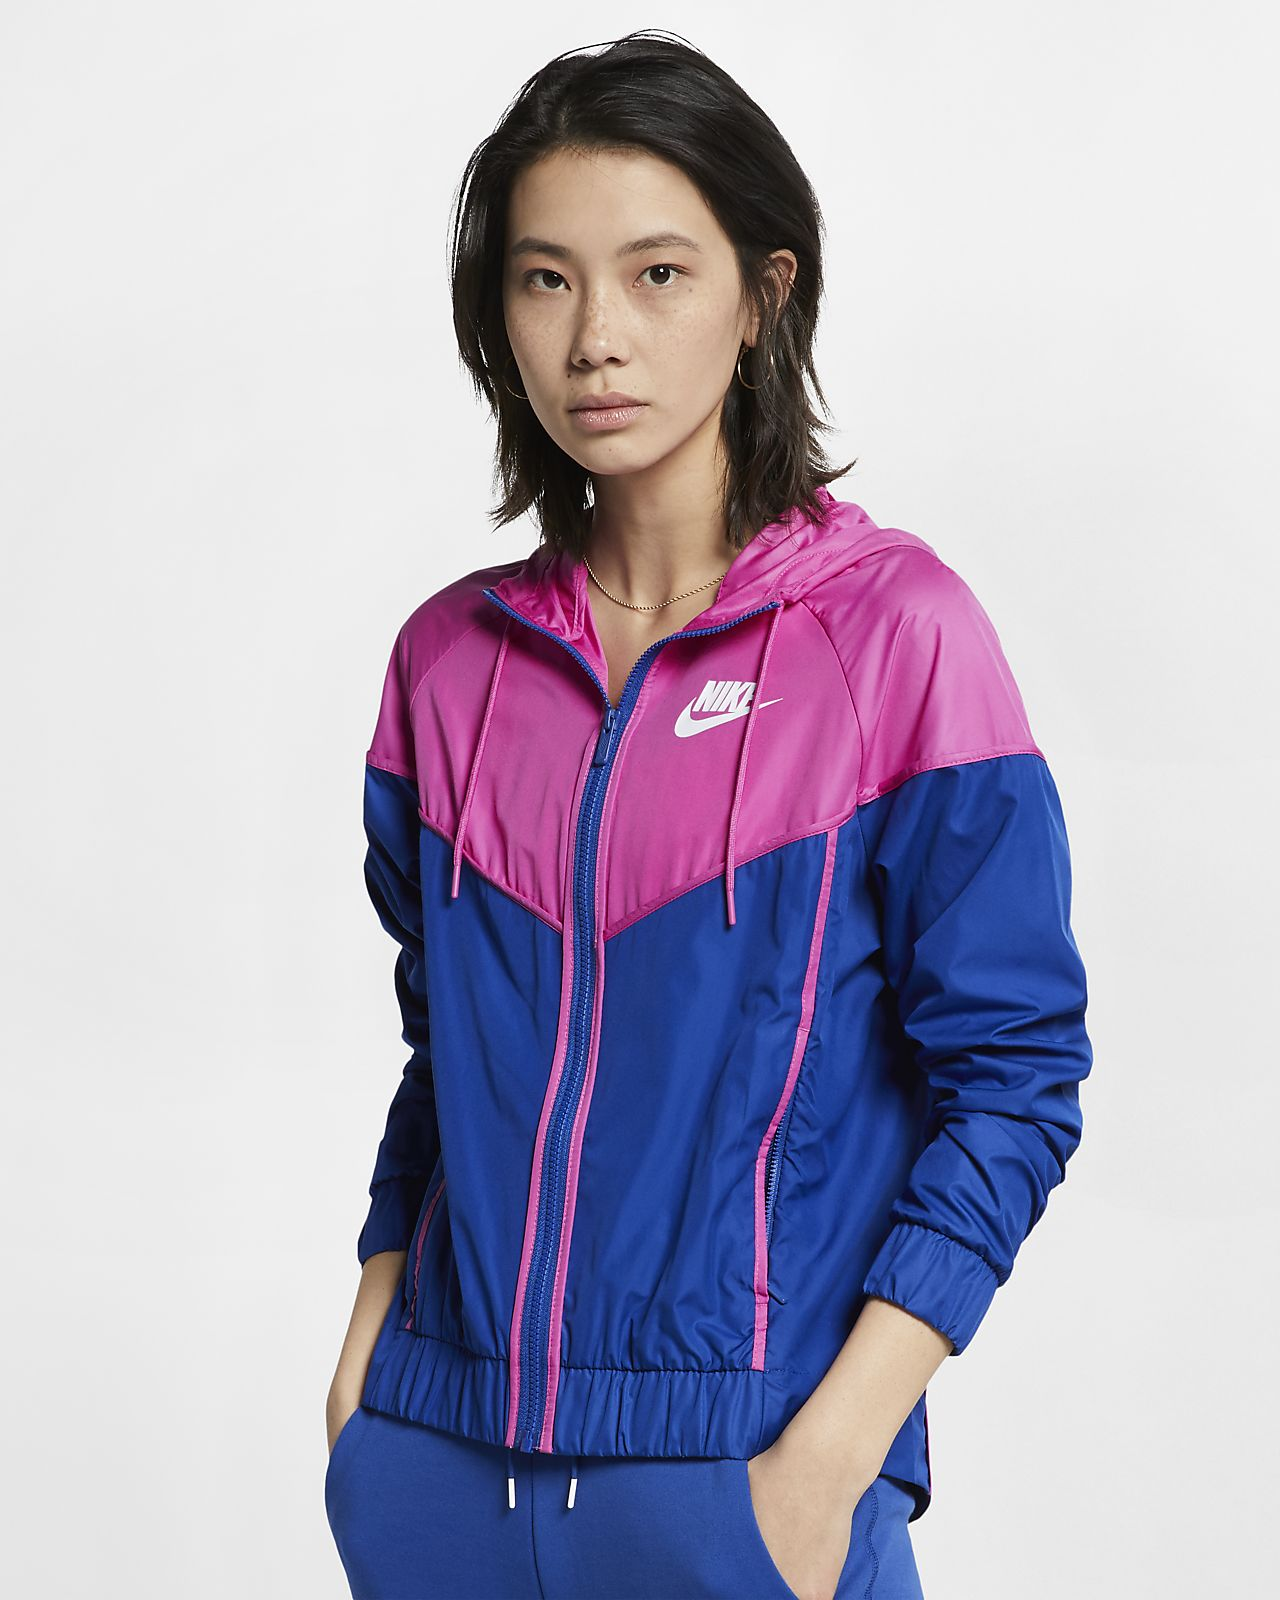 5af0721abbeb Low Resolution Nike Sportswear Windrunner Women s Woven Windbreaker Nike  Sportswear Windrunner Women s Woven Windbreaker